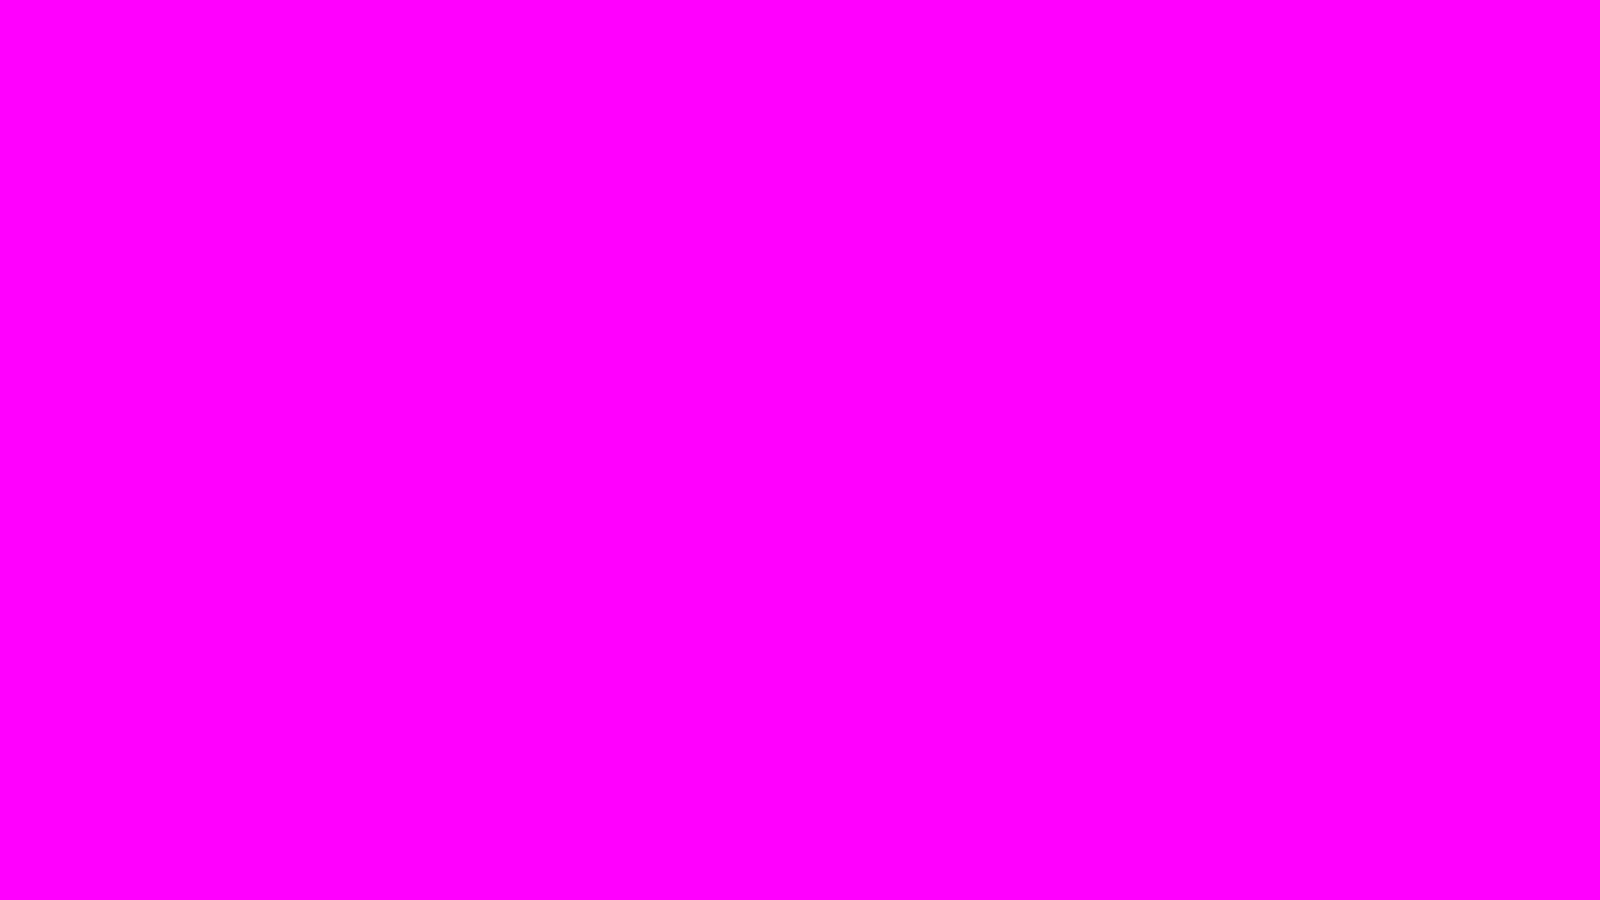 1600x900 Fuchsia Solid Color Background